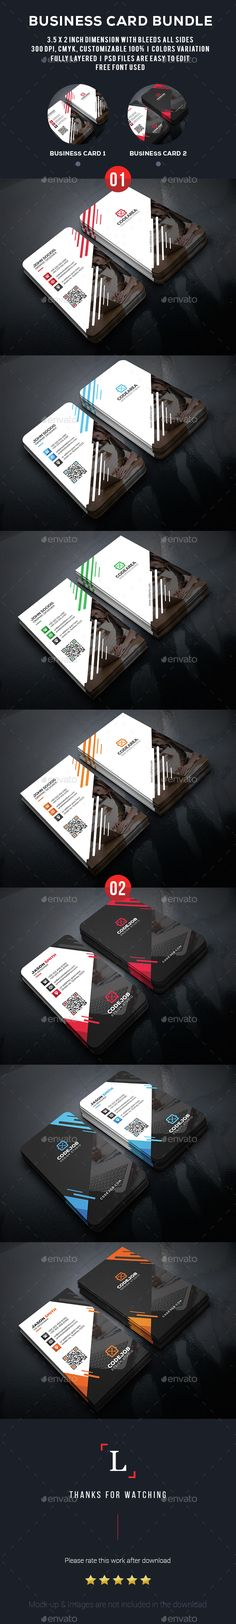 Elegant Business Card Bundle Template PSD. Download here: http://graphicriver.net/item/elegant-business-card-bundle/15352628?ref=ksioks